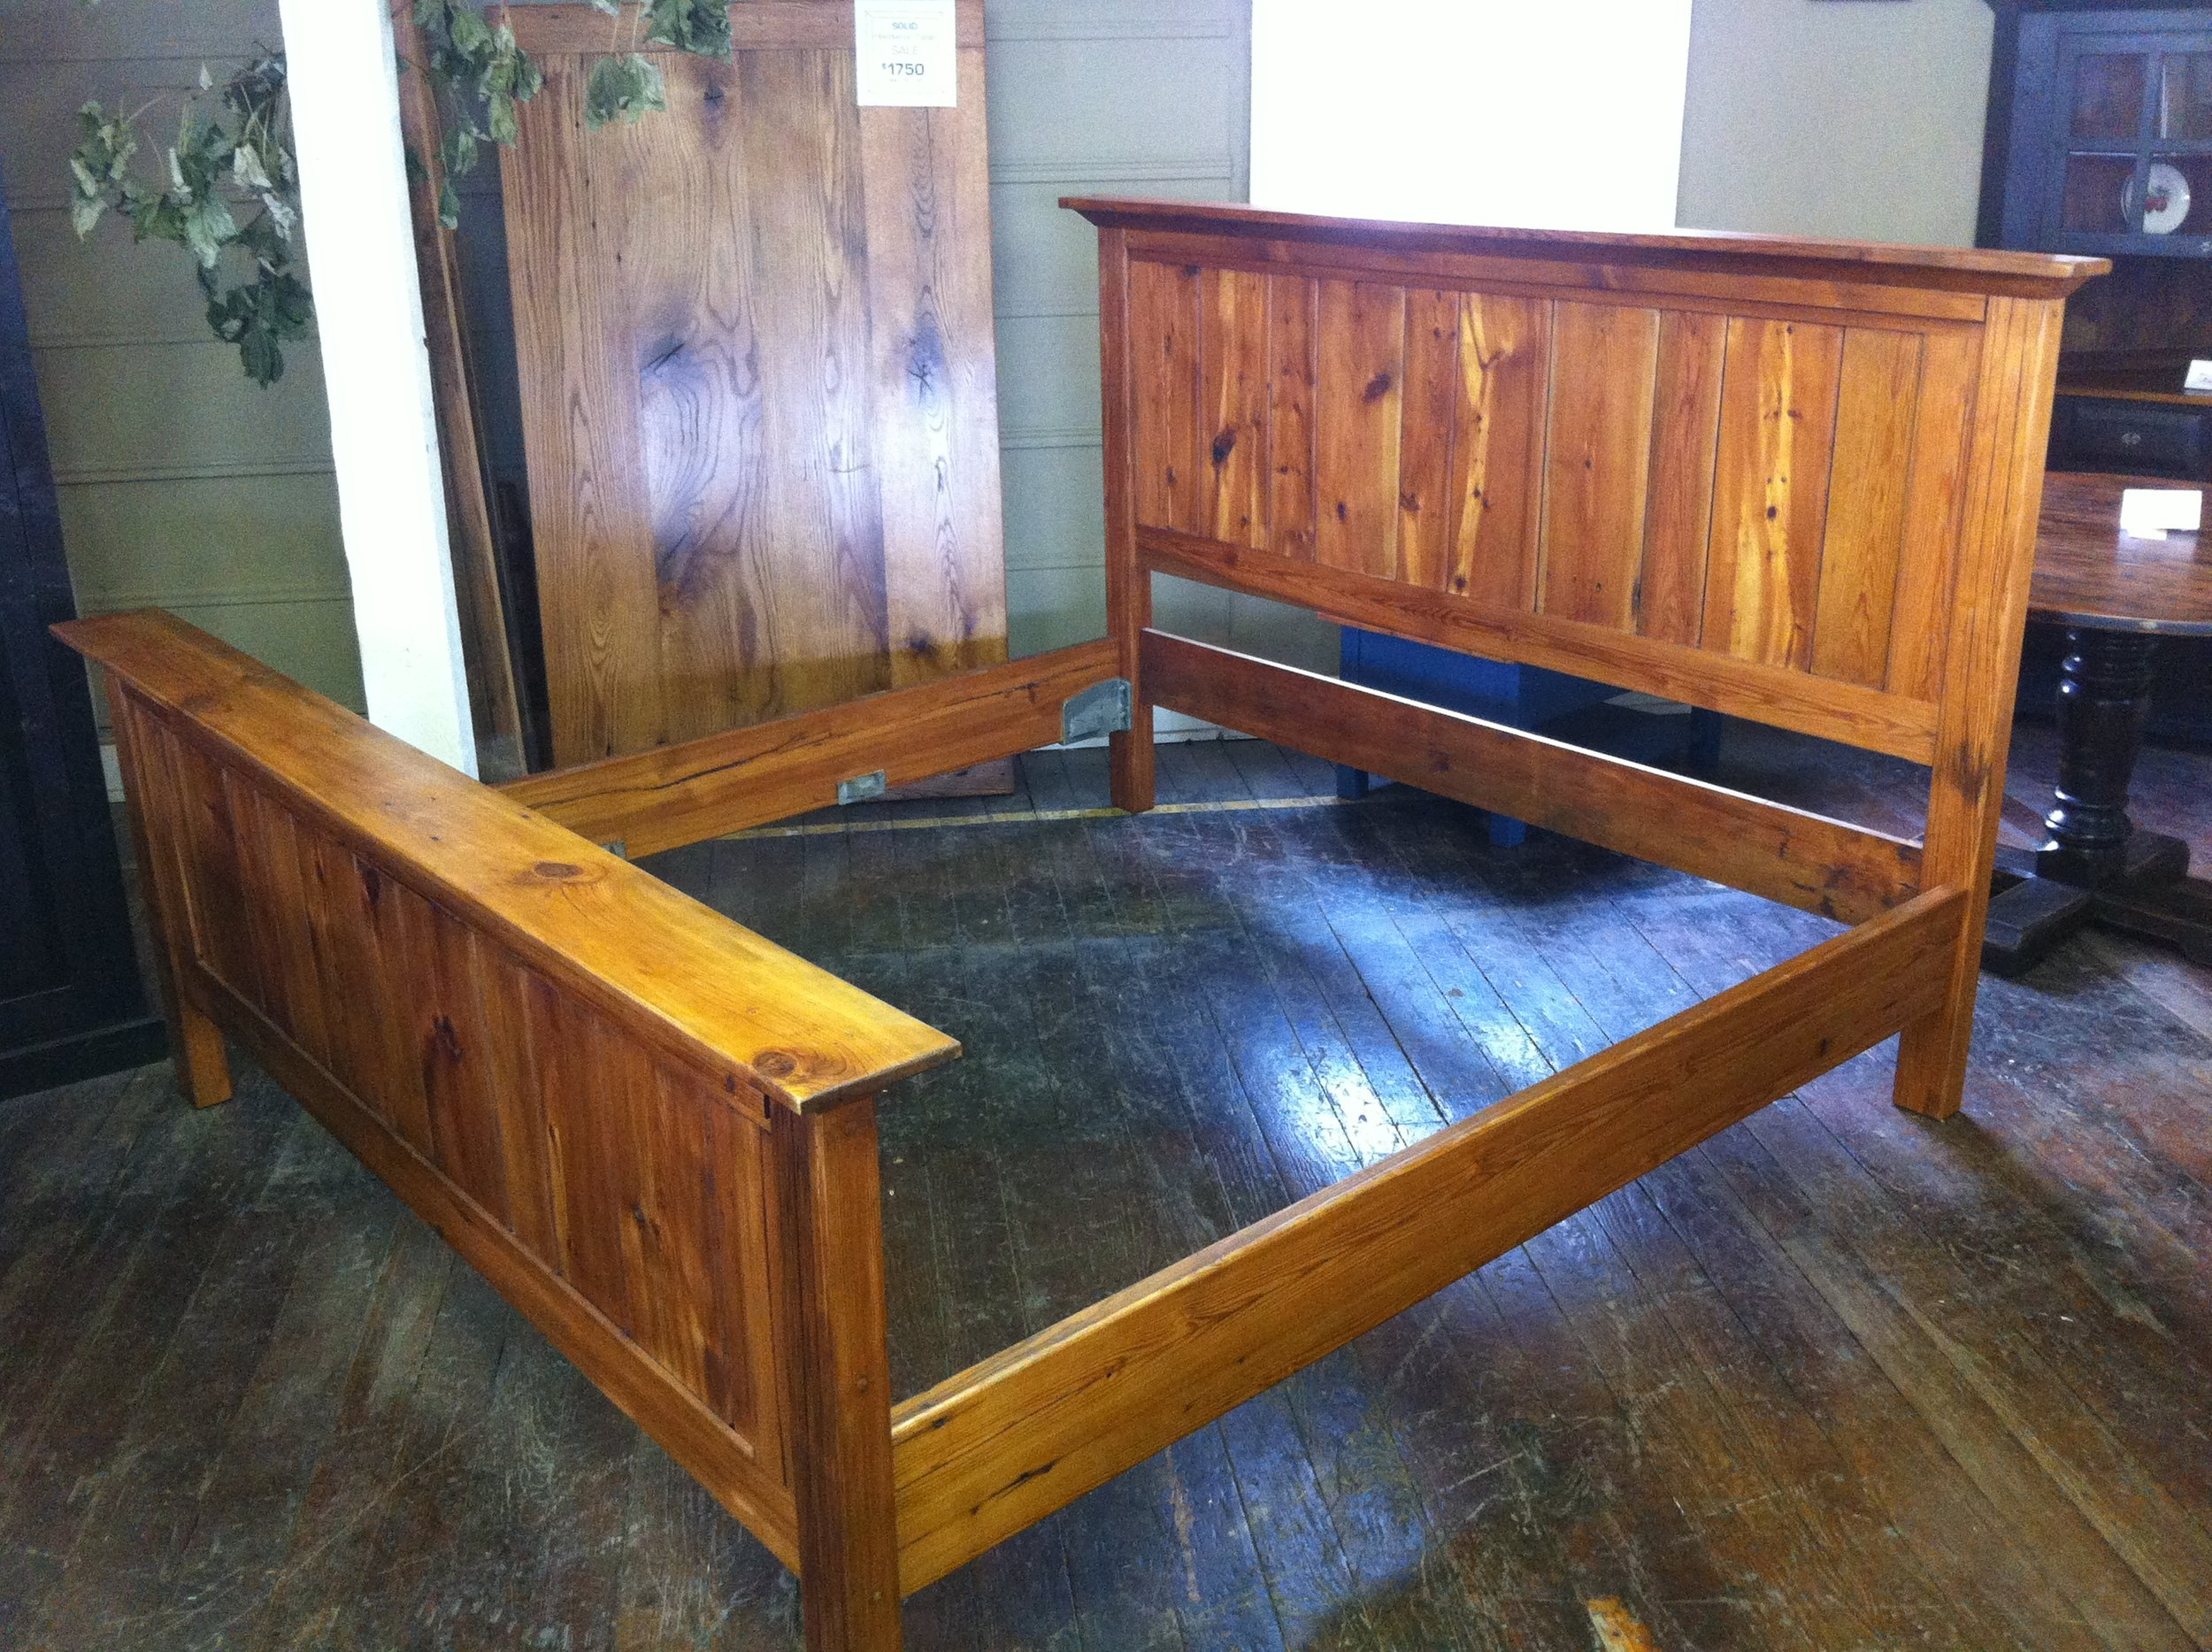 BR39 - Shelf Bed - Reclaimed Yellow Pine